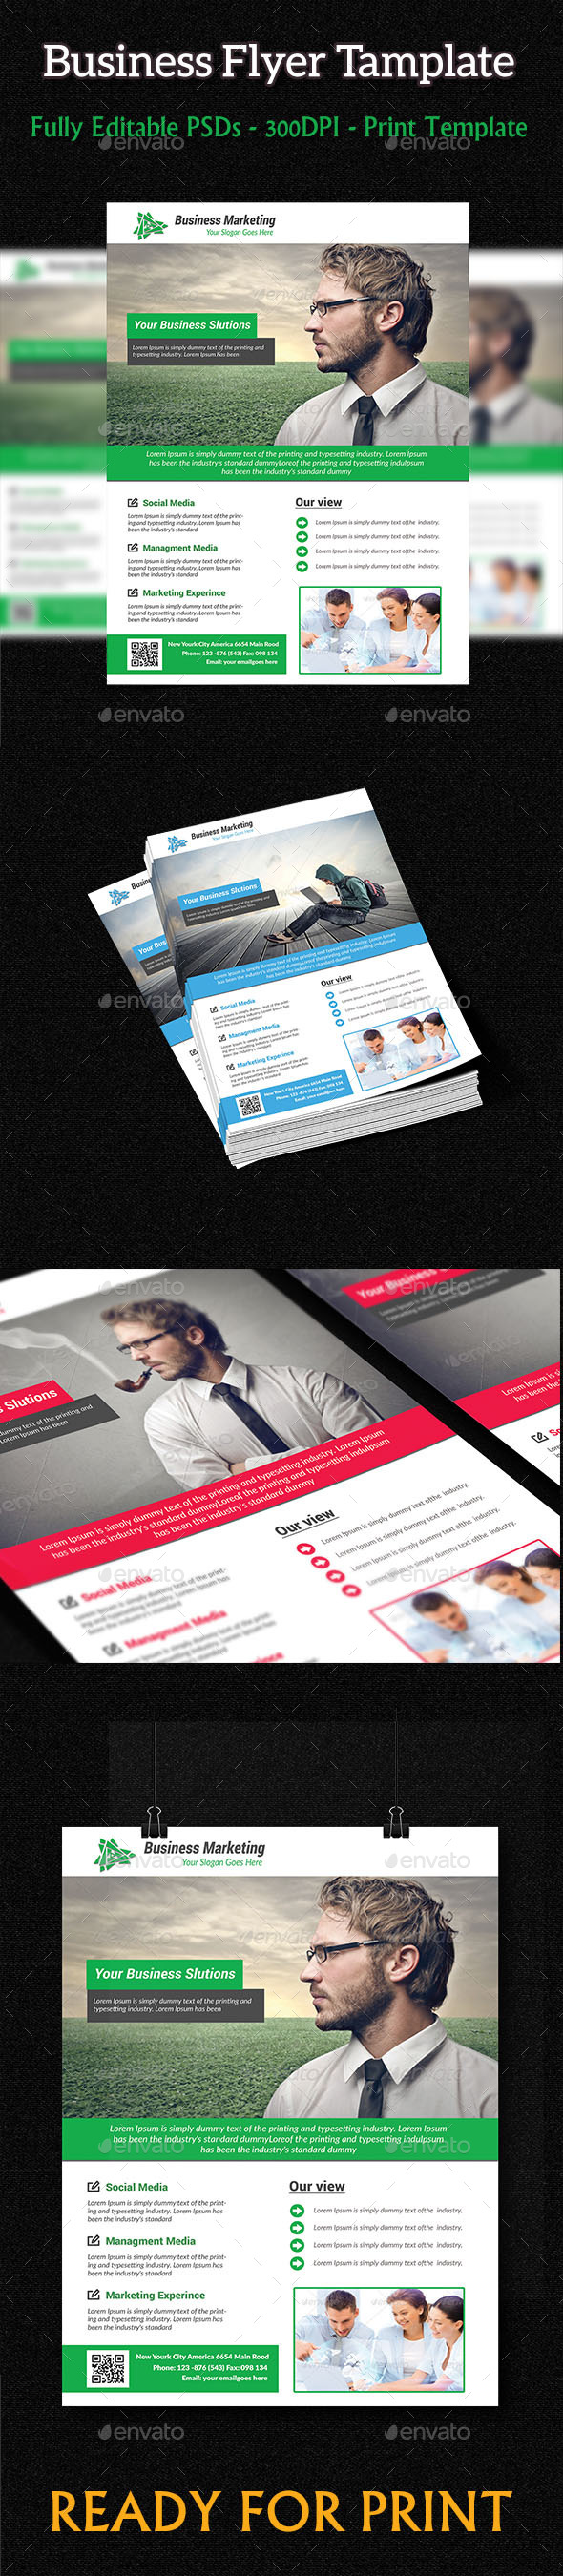 GraphicRiver Business Flyer Template 9014338